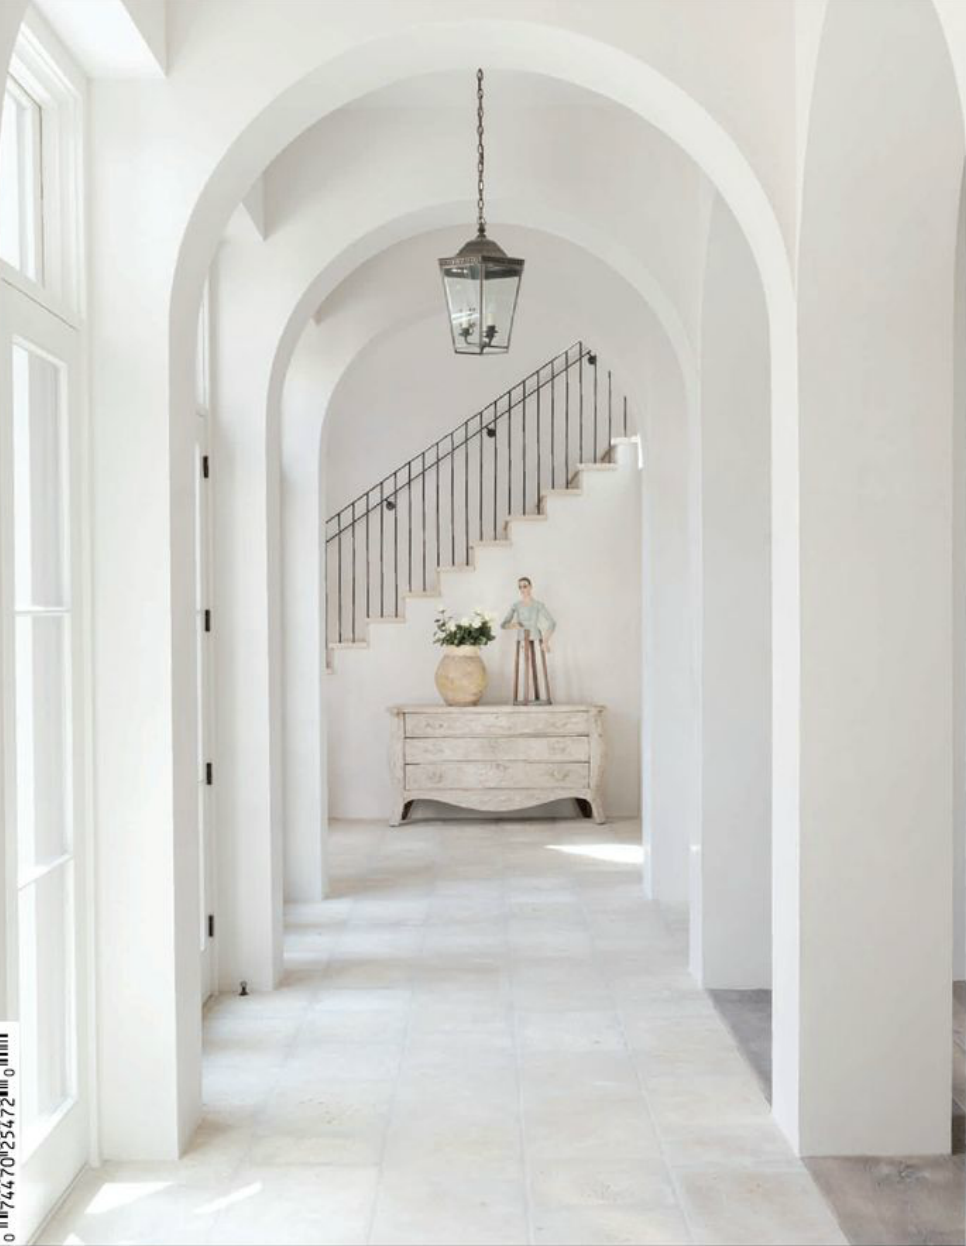 Gorgeous arched doorways, white stone floors and iron stair railings ...